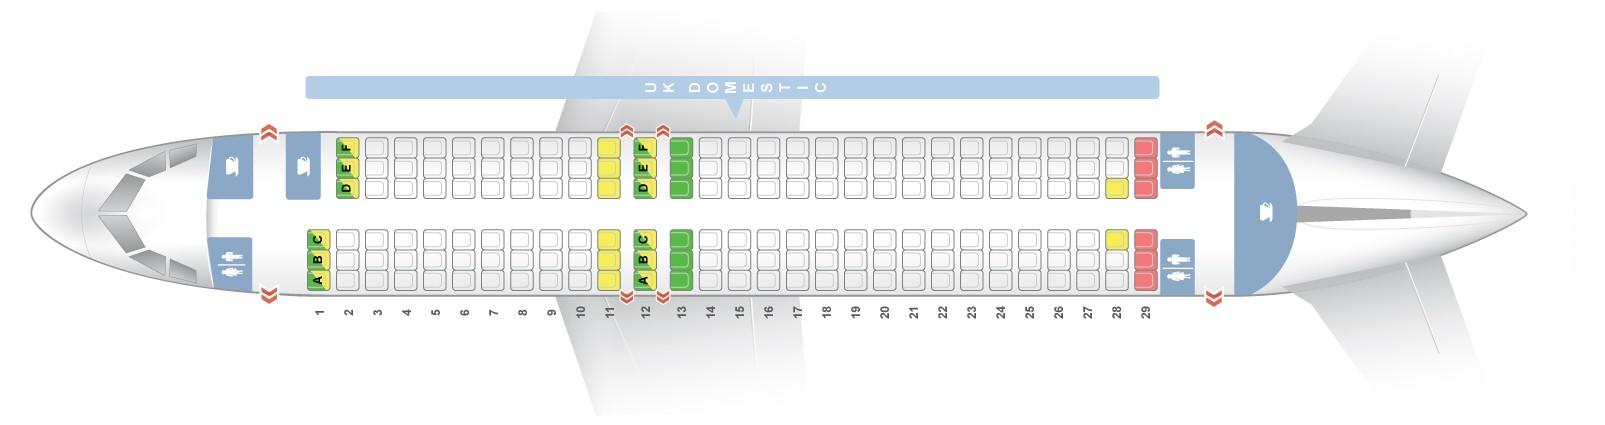 Superb Seat Map Airbus A320 200 British Airways Best Seats In Plane Bralicious Painted Fabric Chair Ideas Braliciousco